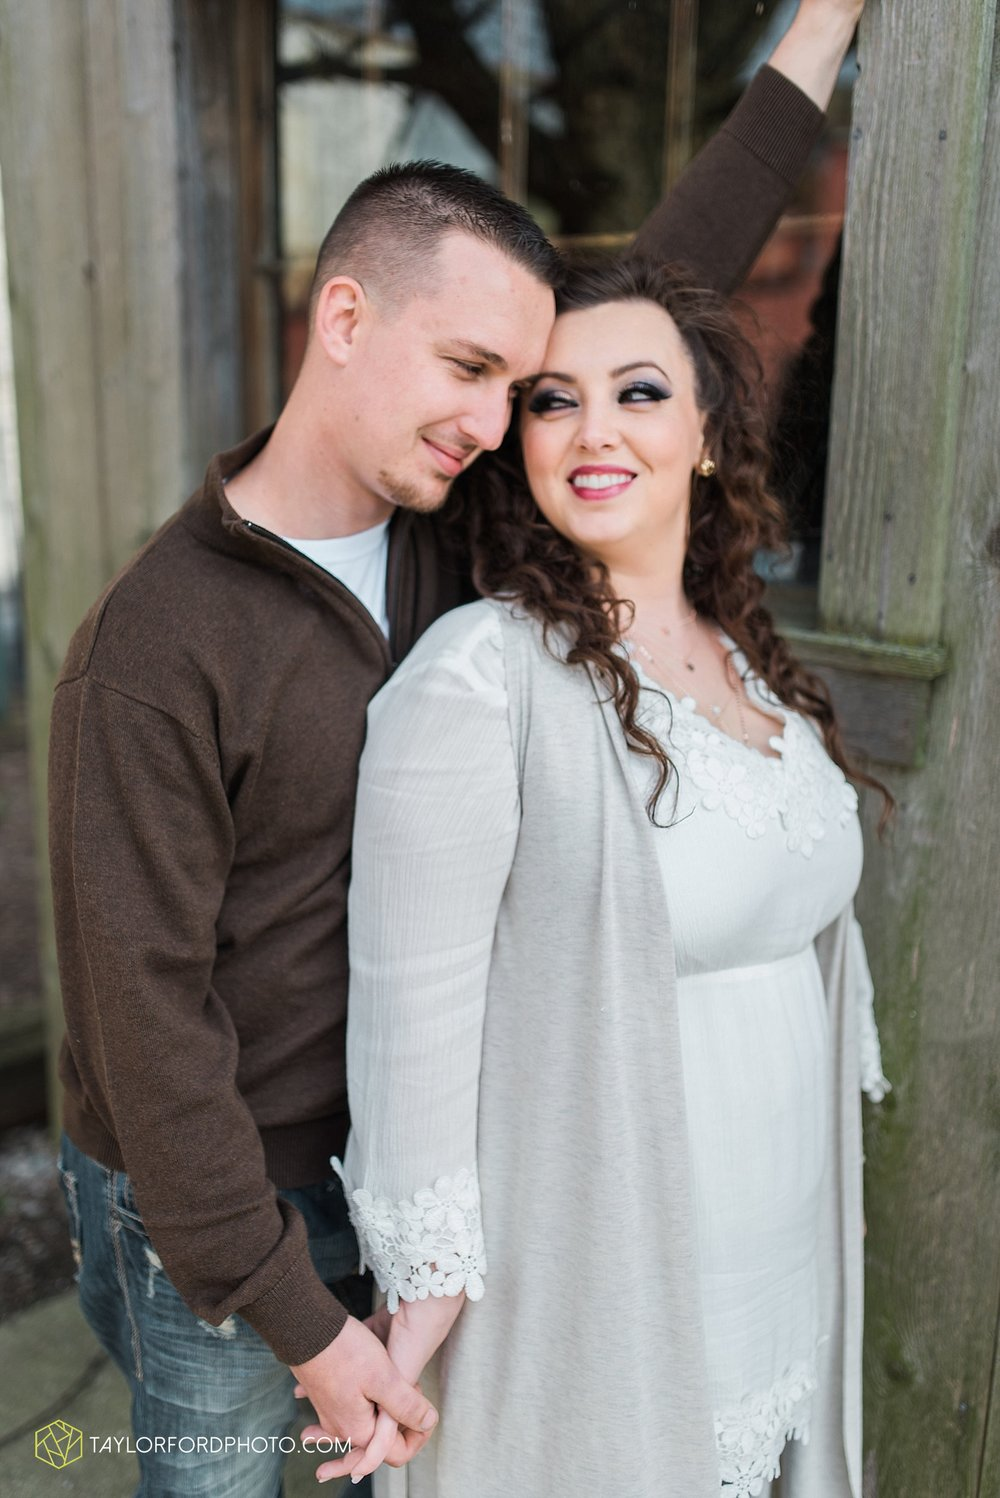 fort-wayne-indiana-engagement-wedding-photographer-taylor-ford-photography_1545.jpg